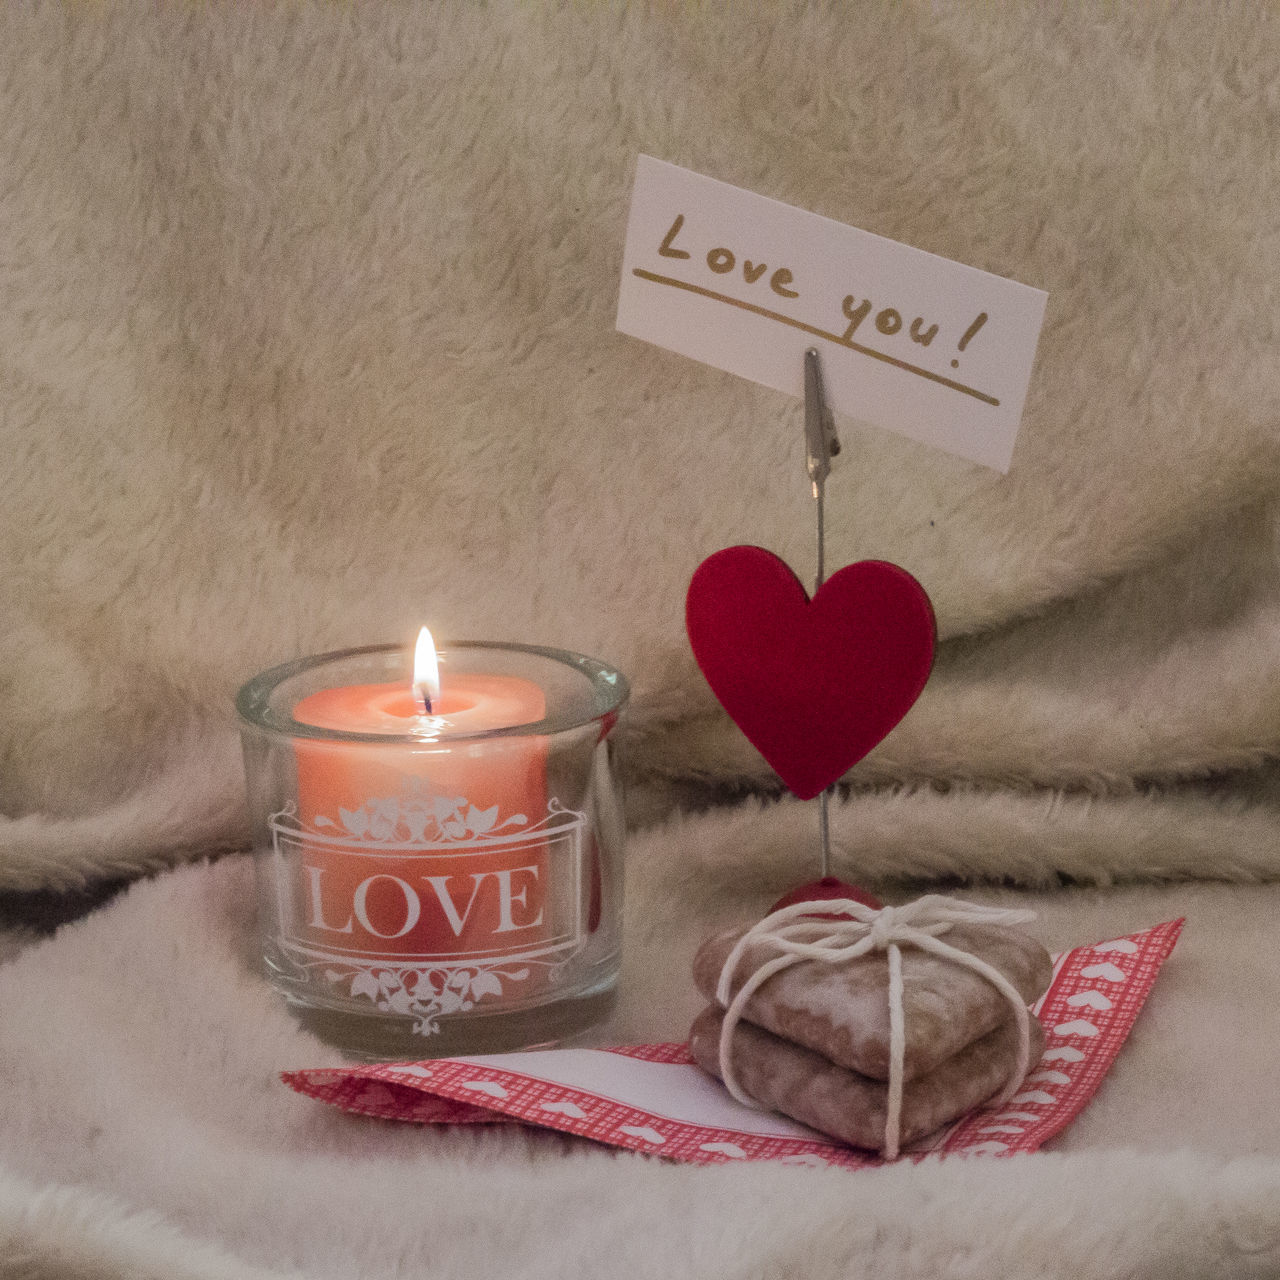 Valentine's day decoration Burning Candle Celebration Celebration Celebration Event Christmas Decoration Close-up Confession Flame Heart Heart Shape Holiday Indoors  Love Love No People Romance Tea Light Text Valentine's Day  Valentine's Day - Holiday